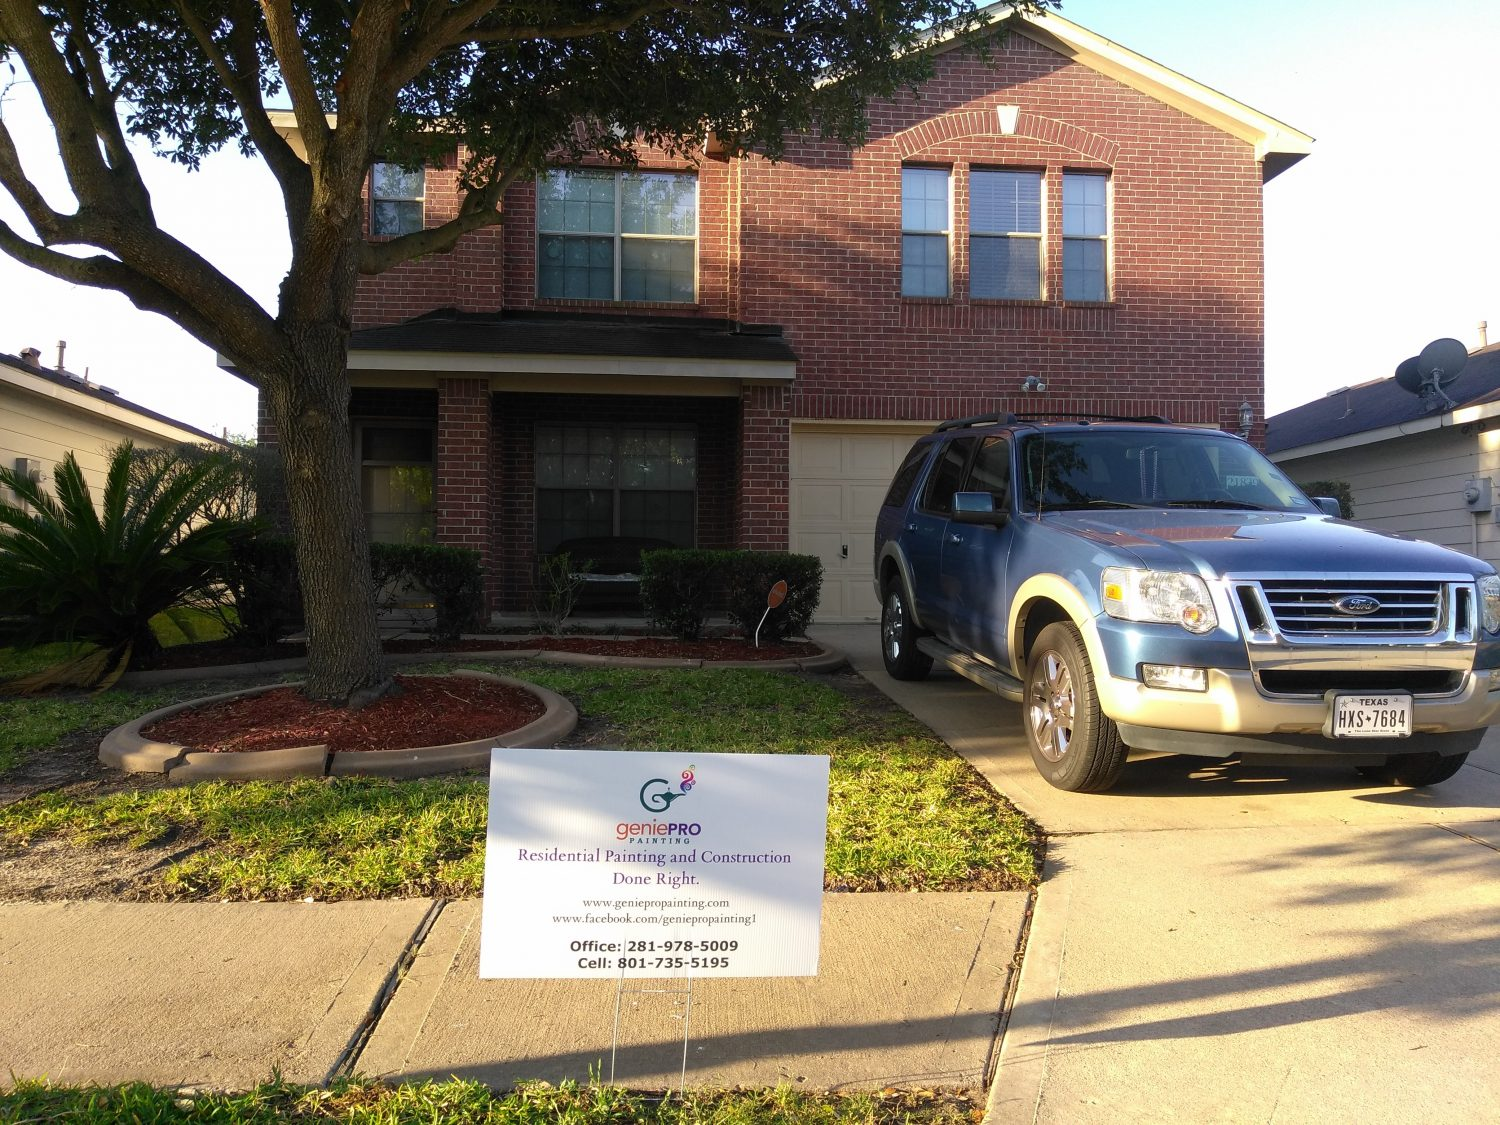 Exterior Paint Job of North Katy, TX Neighborhood Home